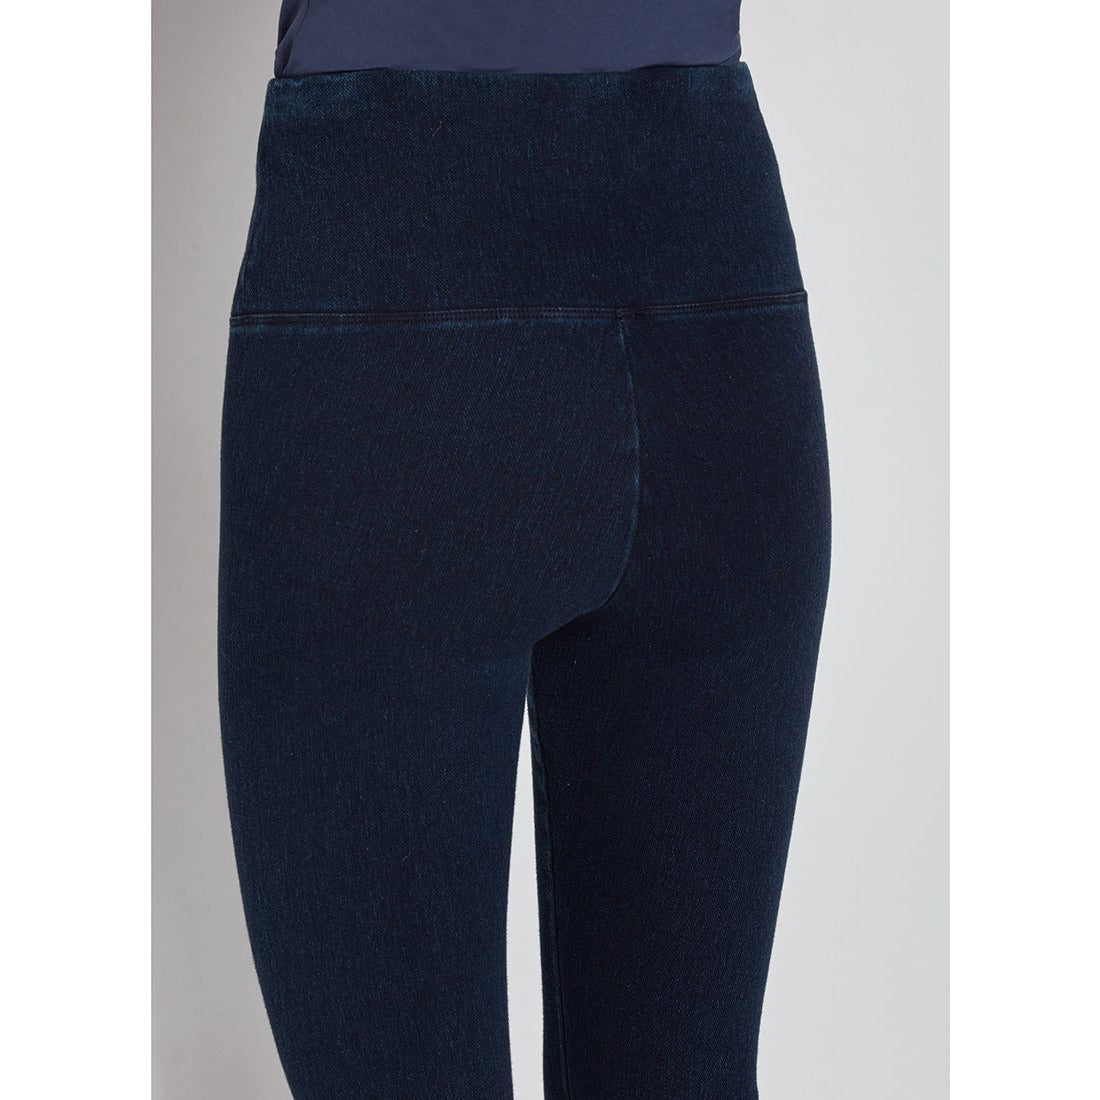 Lysse Denim Legging - Fashion Crossroads Inc